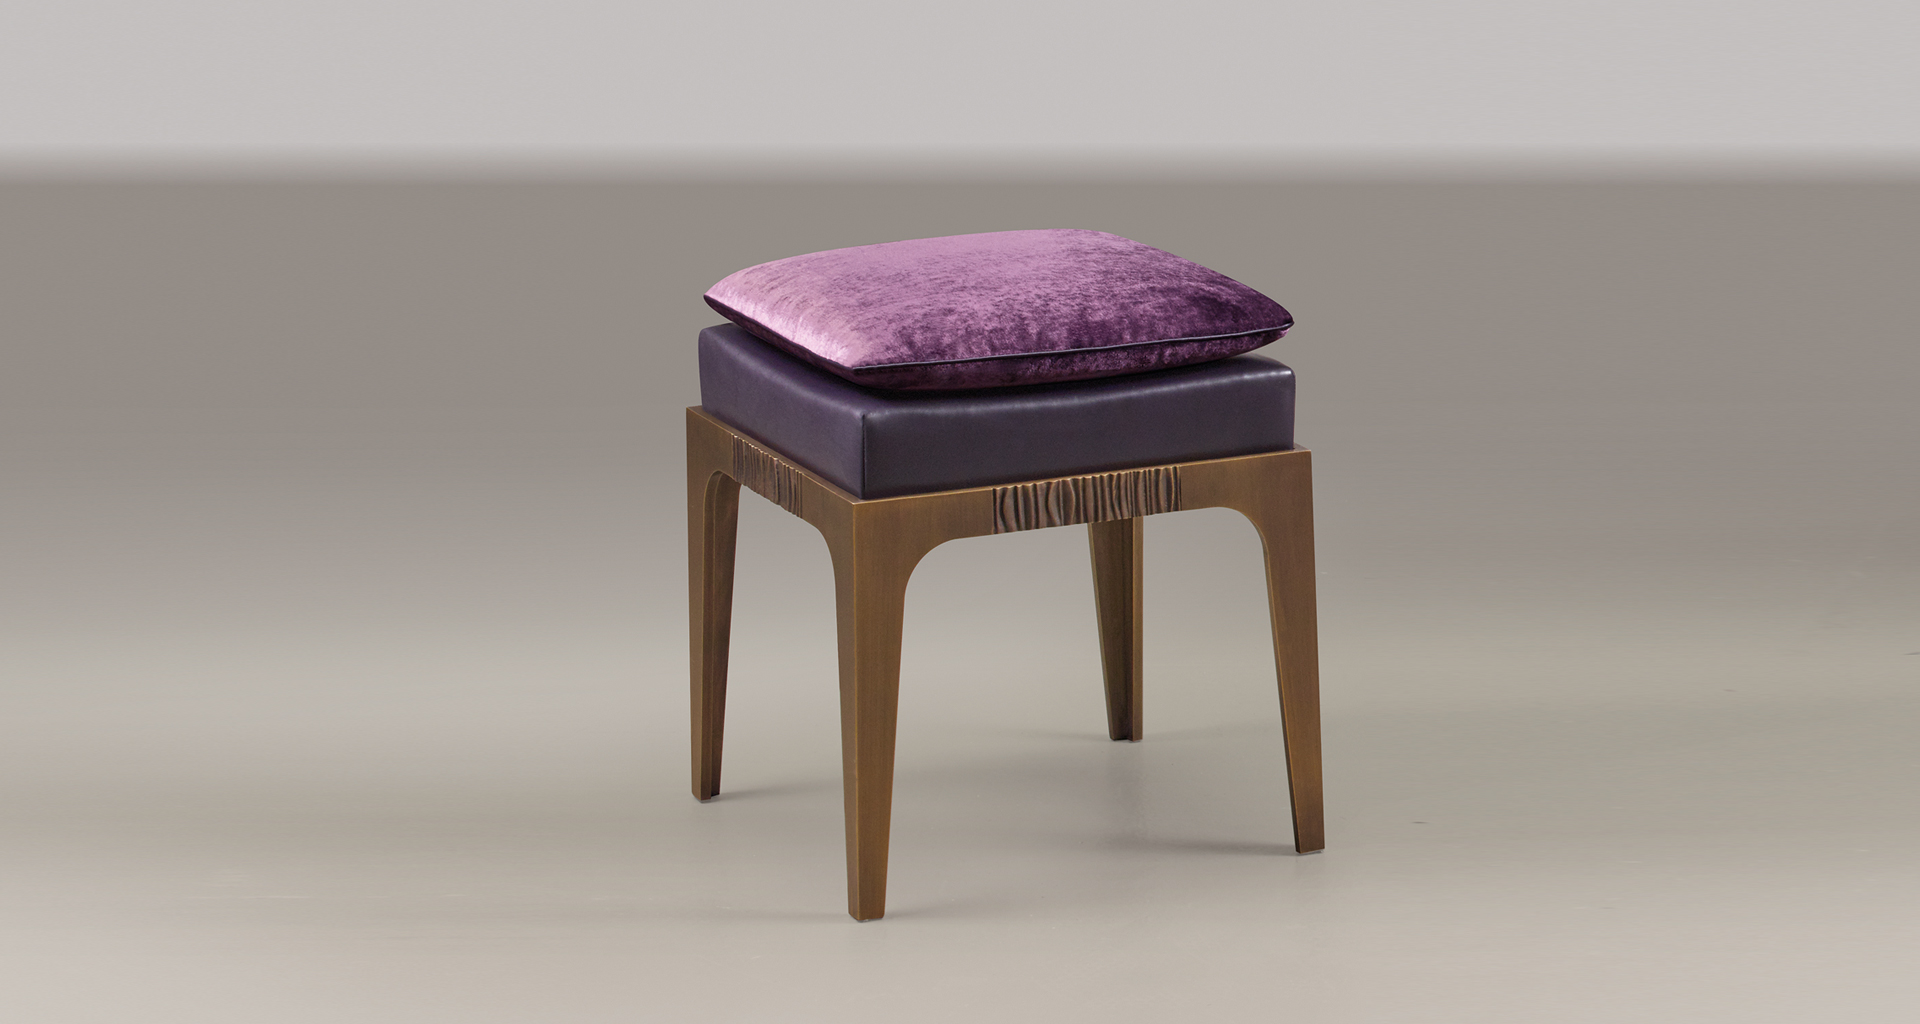 Montagu is a bronze stool with leather seat and fabric cushion, from Promemoria's The London Collection | Promemoria